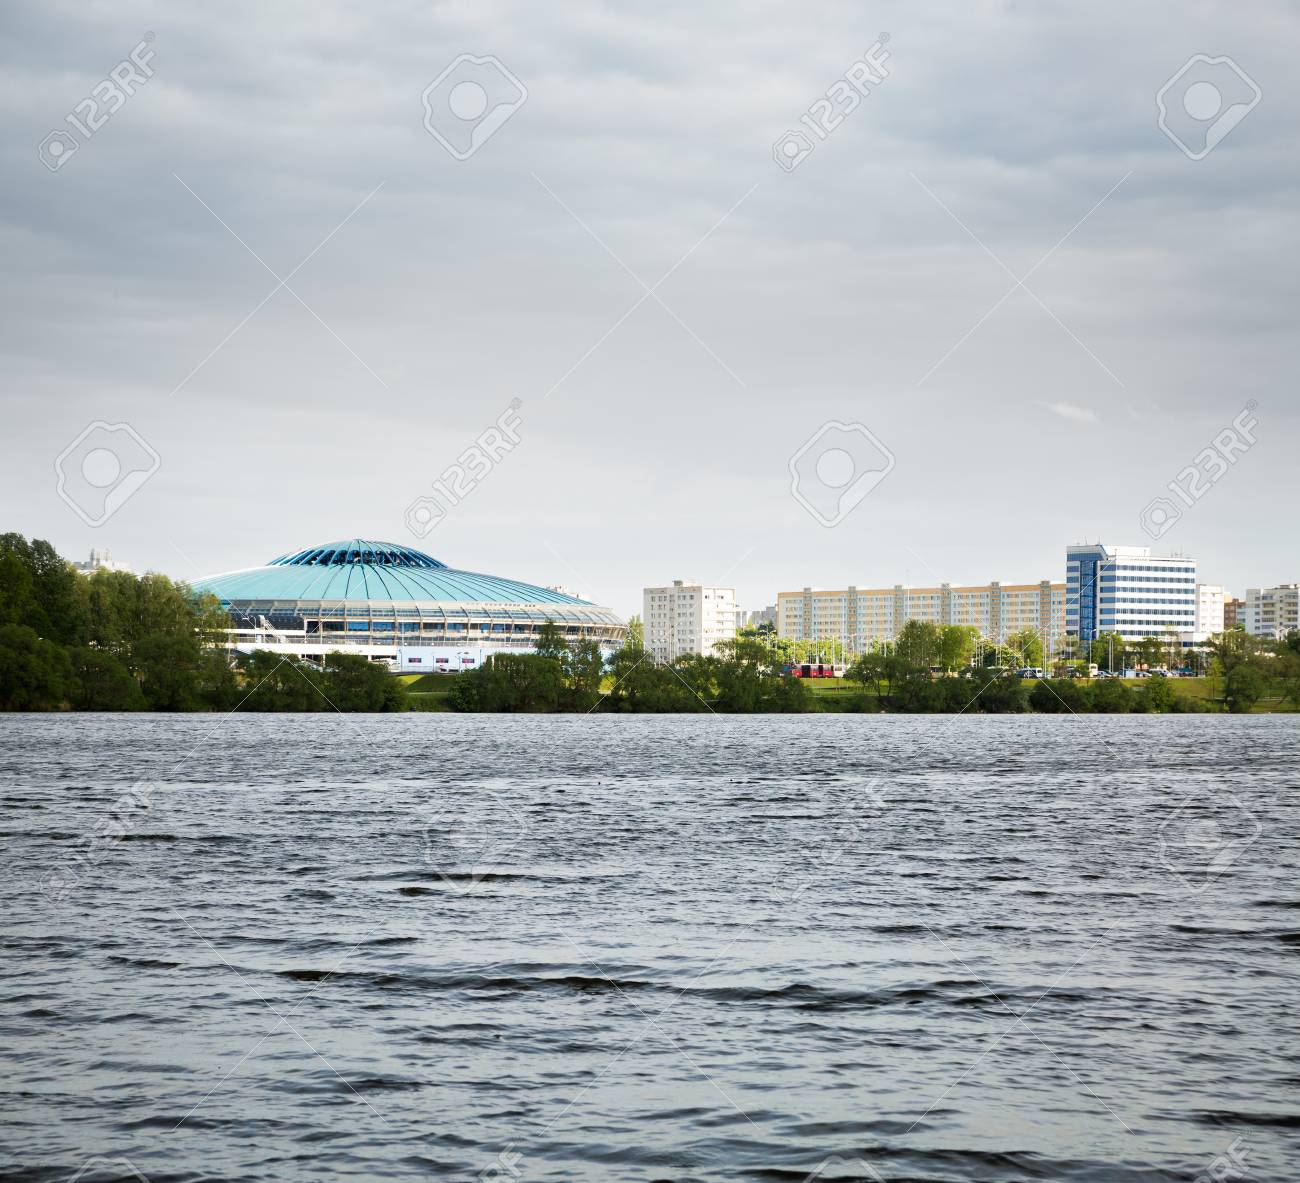 MINSK, BELARUS - MAY 11 - Chizhovka Arena on May 11, 2014 in Minsk, Belarus  The Venue for Ice Hockey 2014 World Championship IIHF  Minsk Cityscape  Stock Photo - 28359948